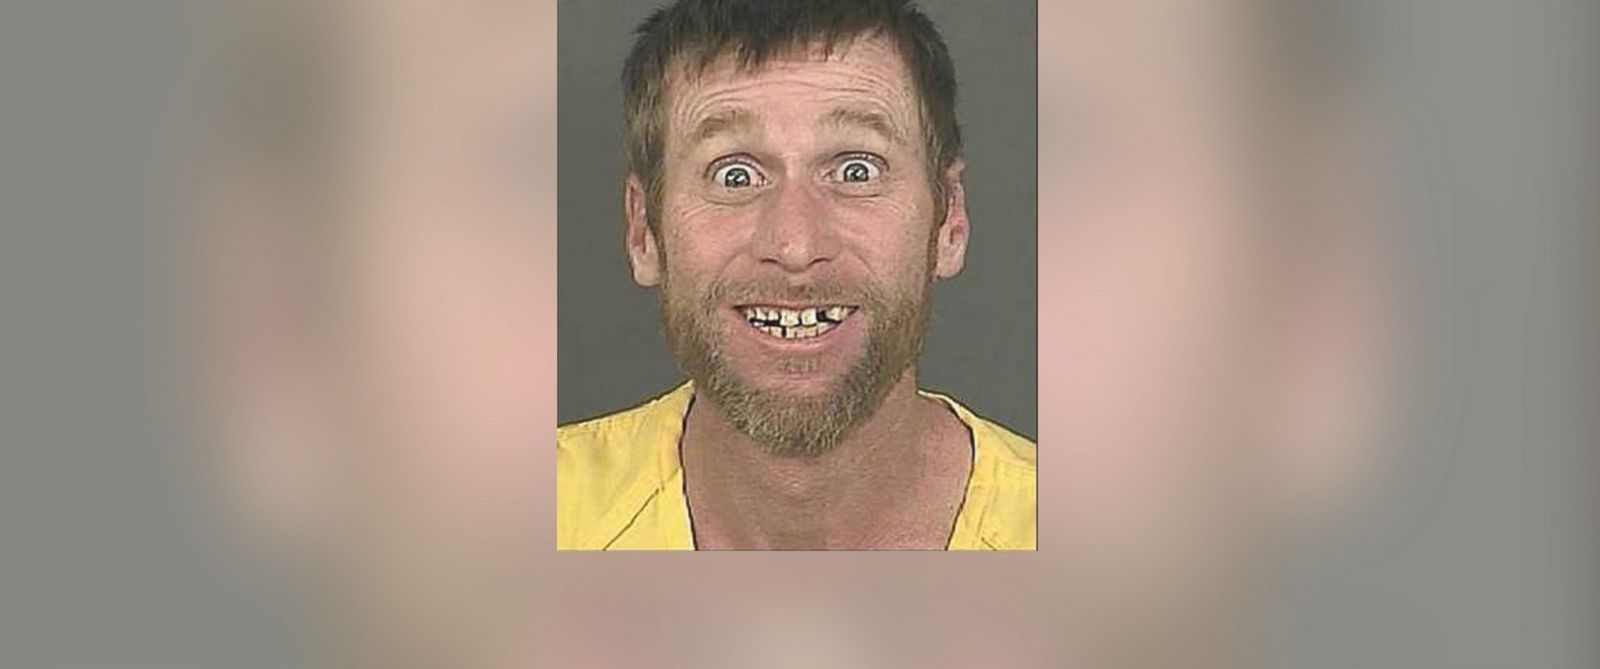 PHOTO: Michael Whitington, 45 is charged with one count of robbery, according to the Denver District Attorneys Office.